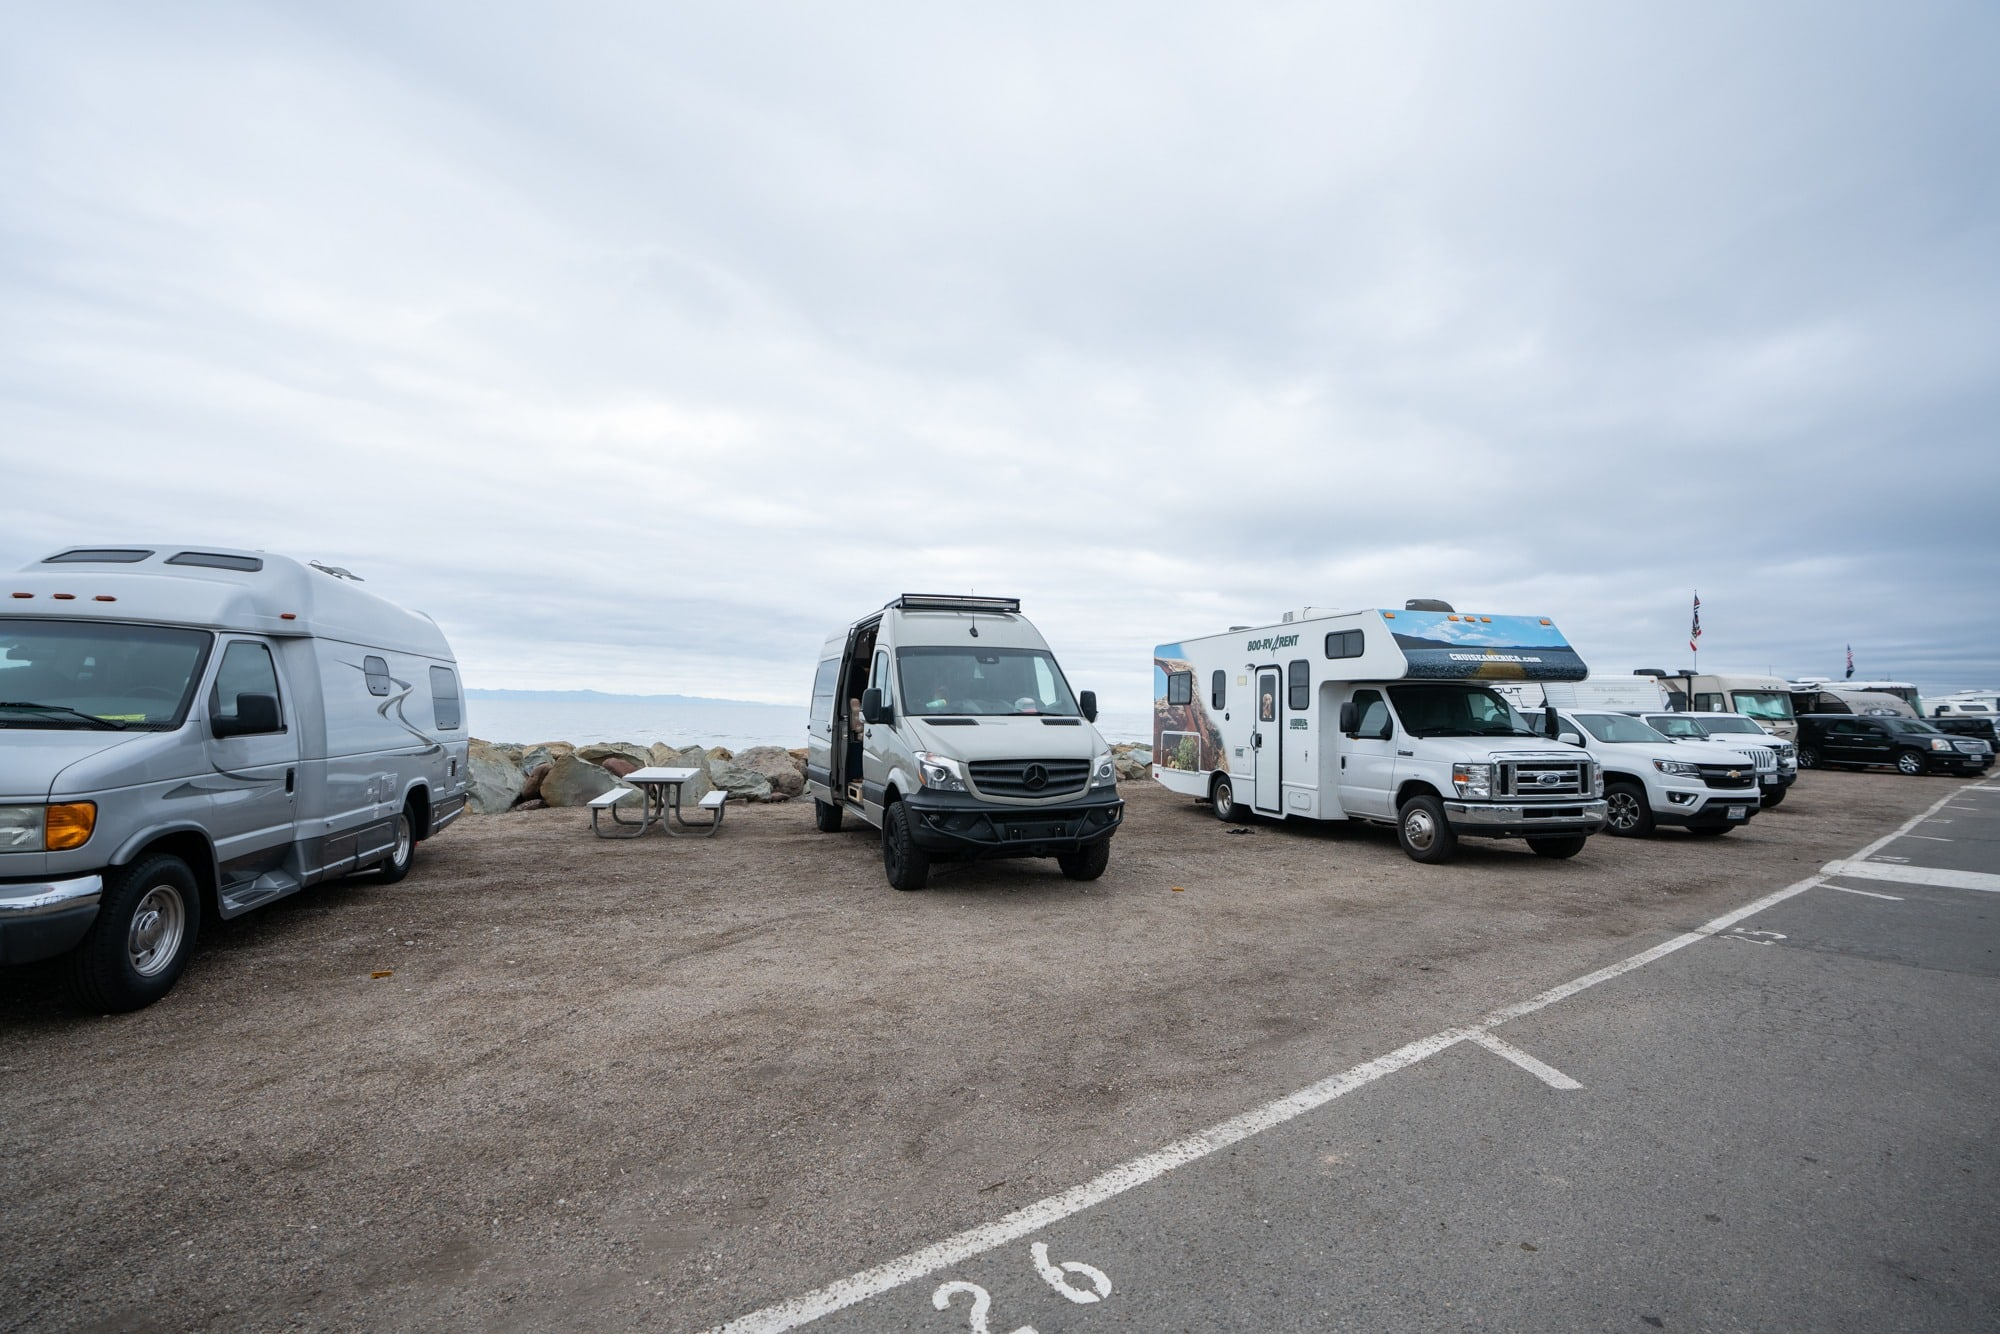 Faria Beach Campground // A 6 day california coast road trip itinerary that combines outdoor adventure travel and local California beach town culture.